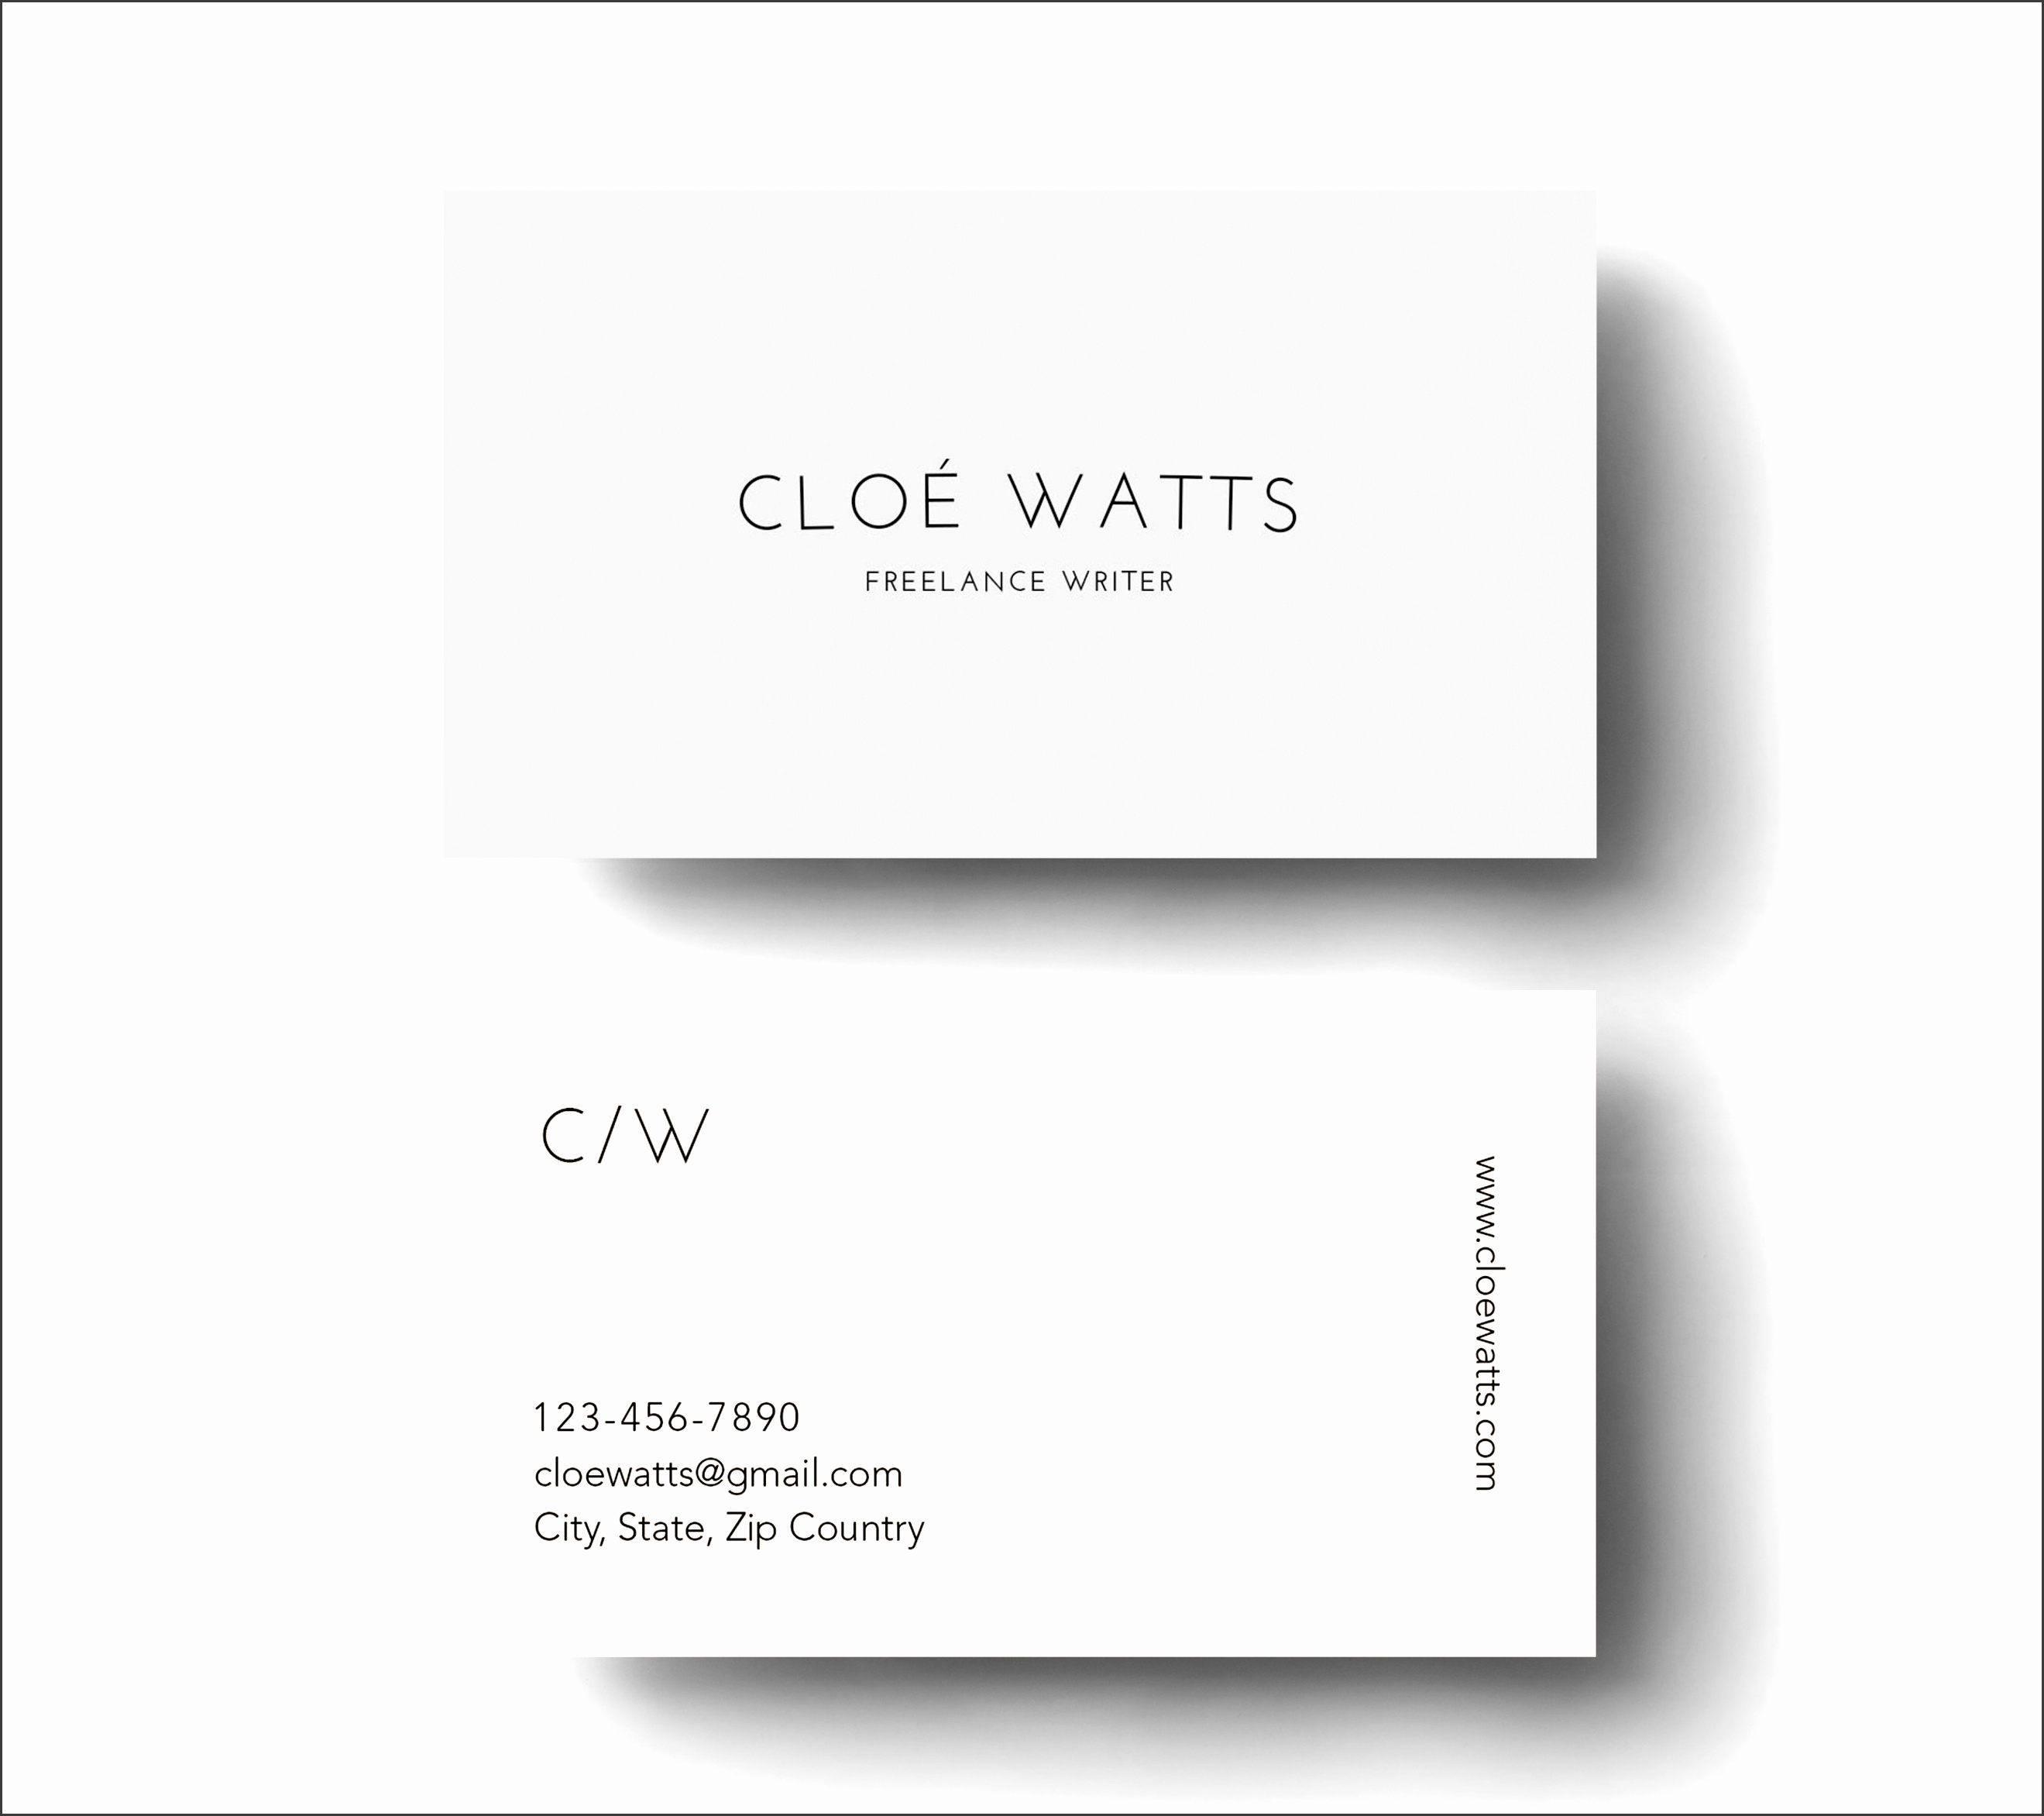 Cards What Size Is Business Card Unique Microsoft Word Template pany Templates Inspirational Shocking